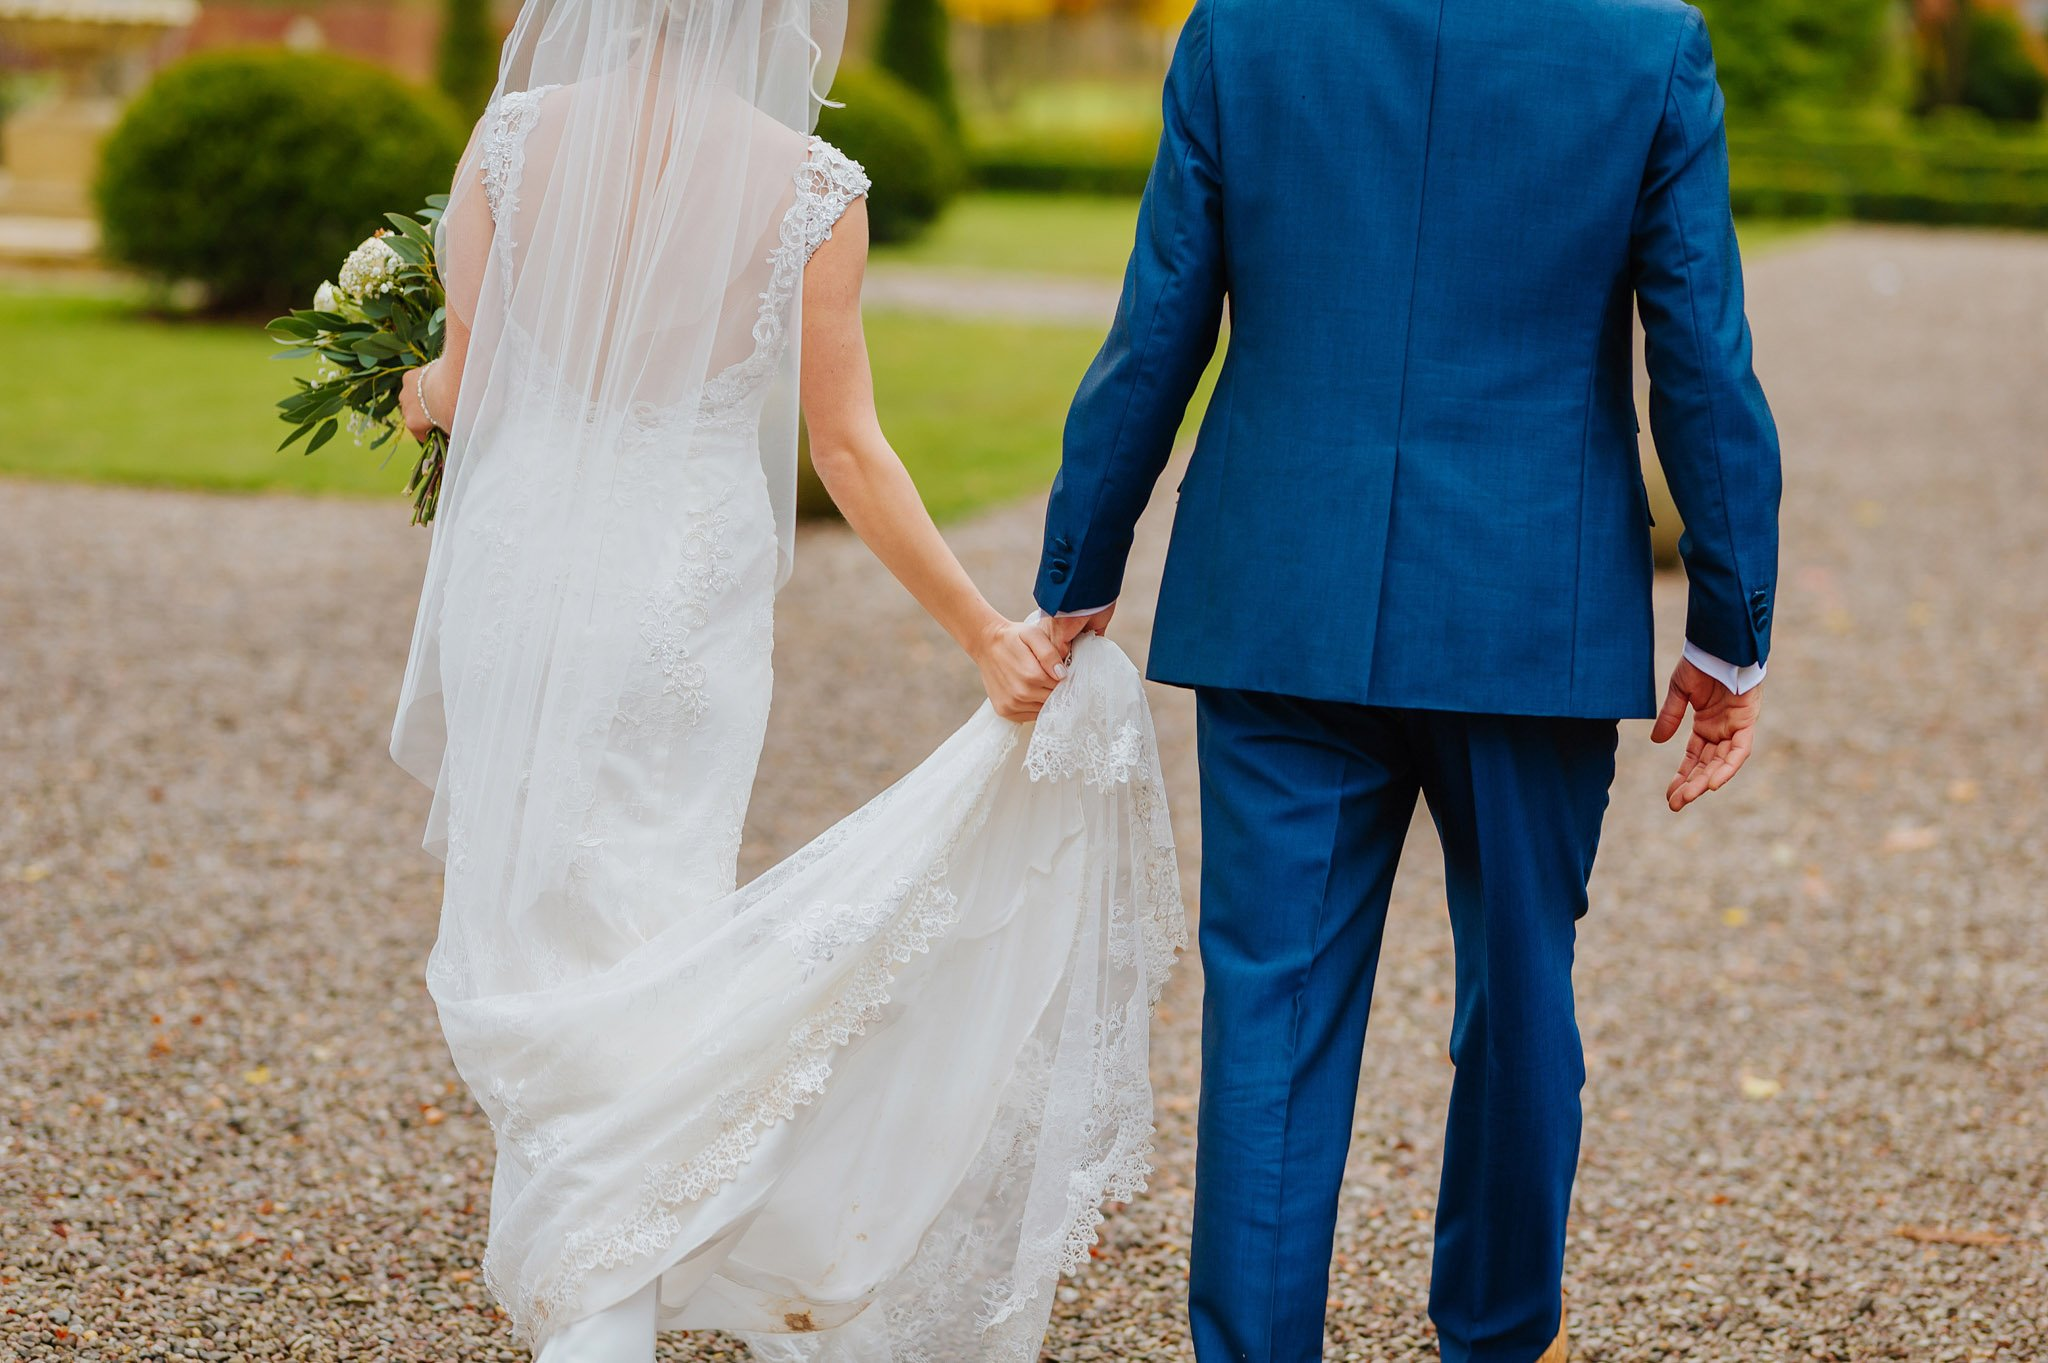 lemore manor wedding herefordshire 96 - Lemore Manor wedding, Herefordshire - West Midlands | Sadie + Ken